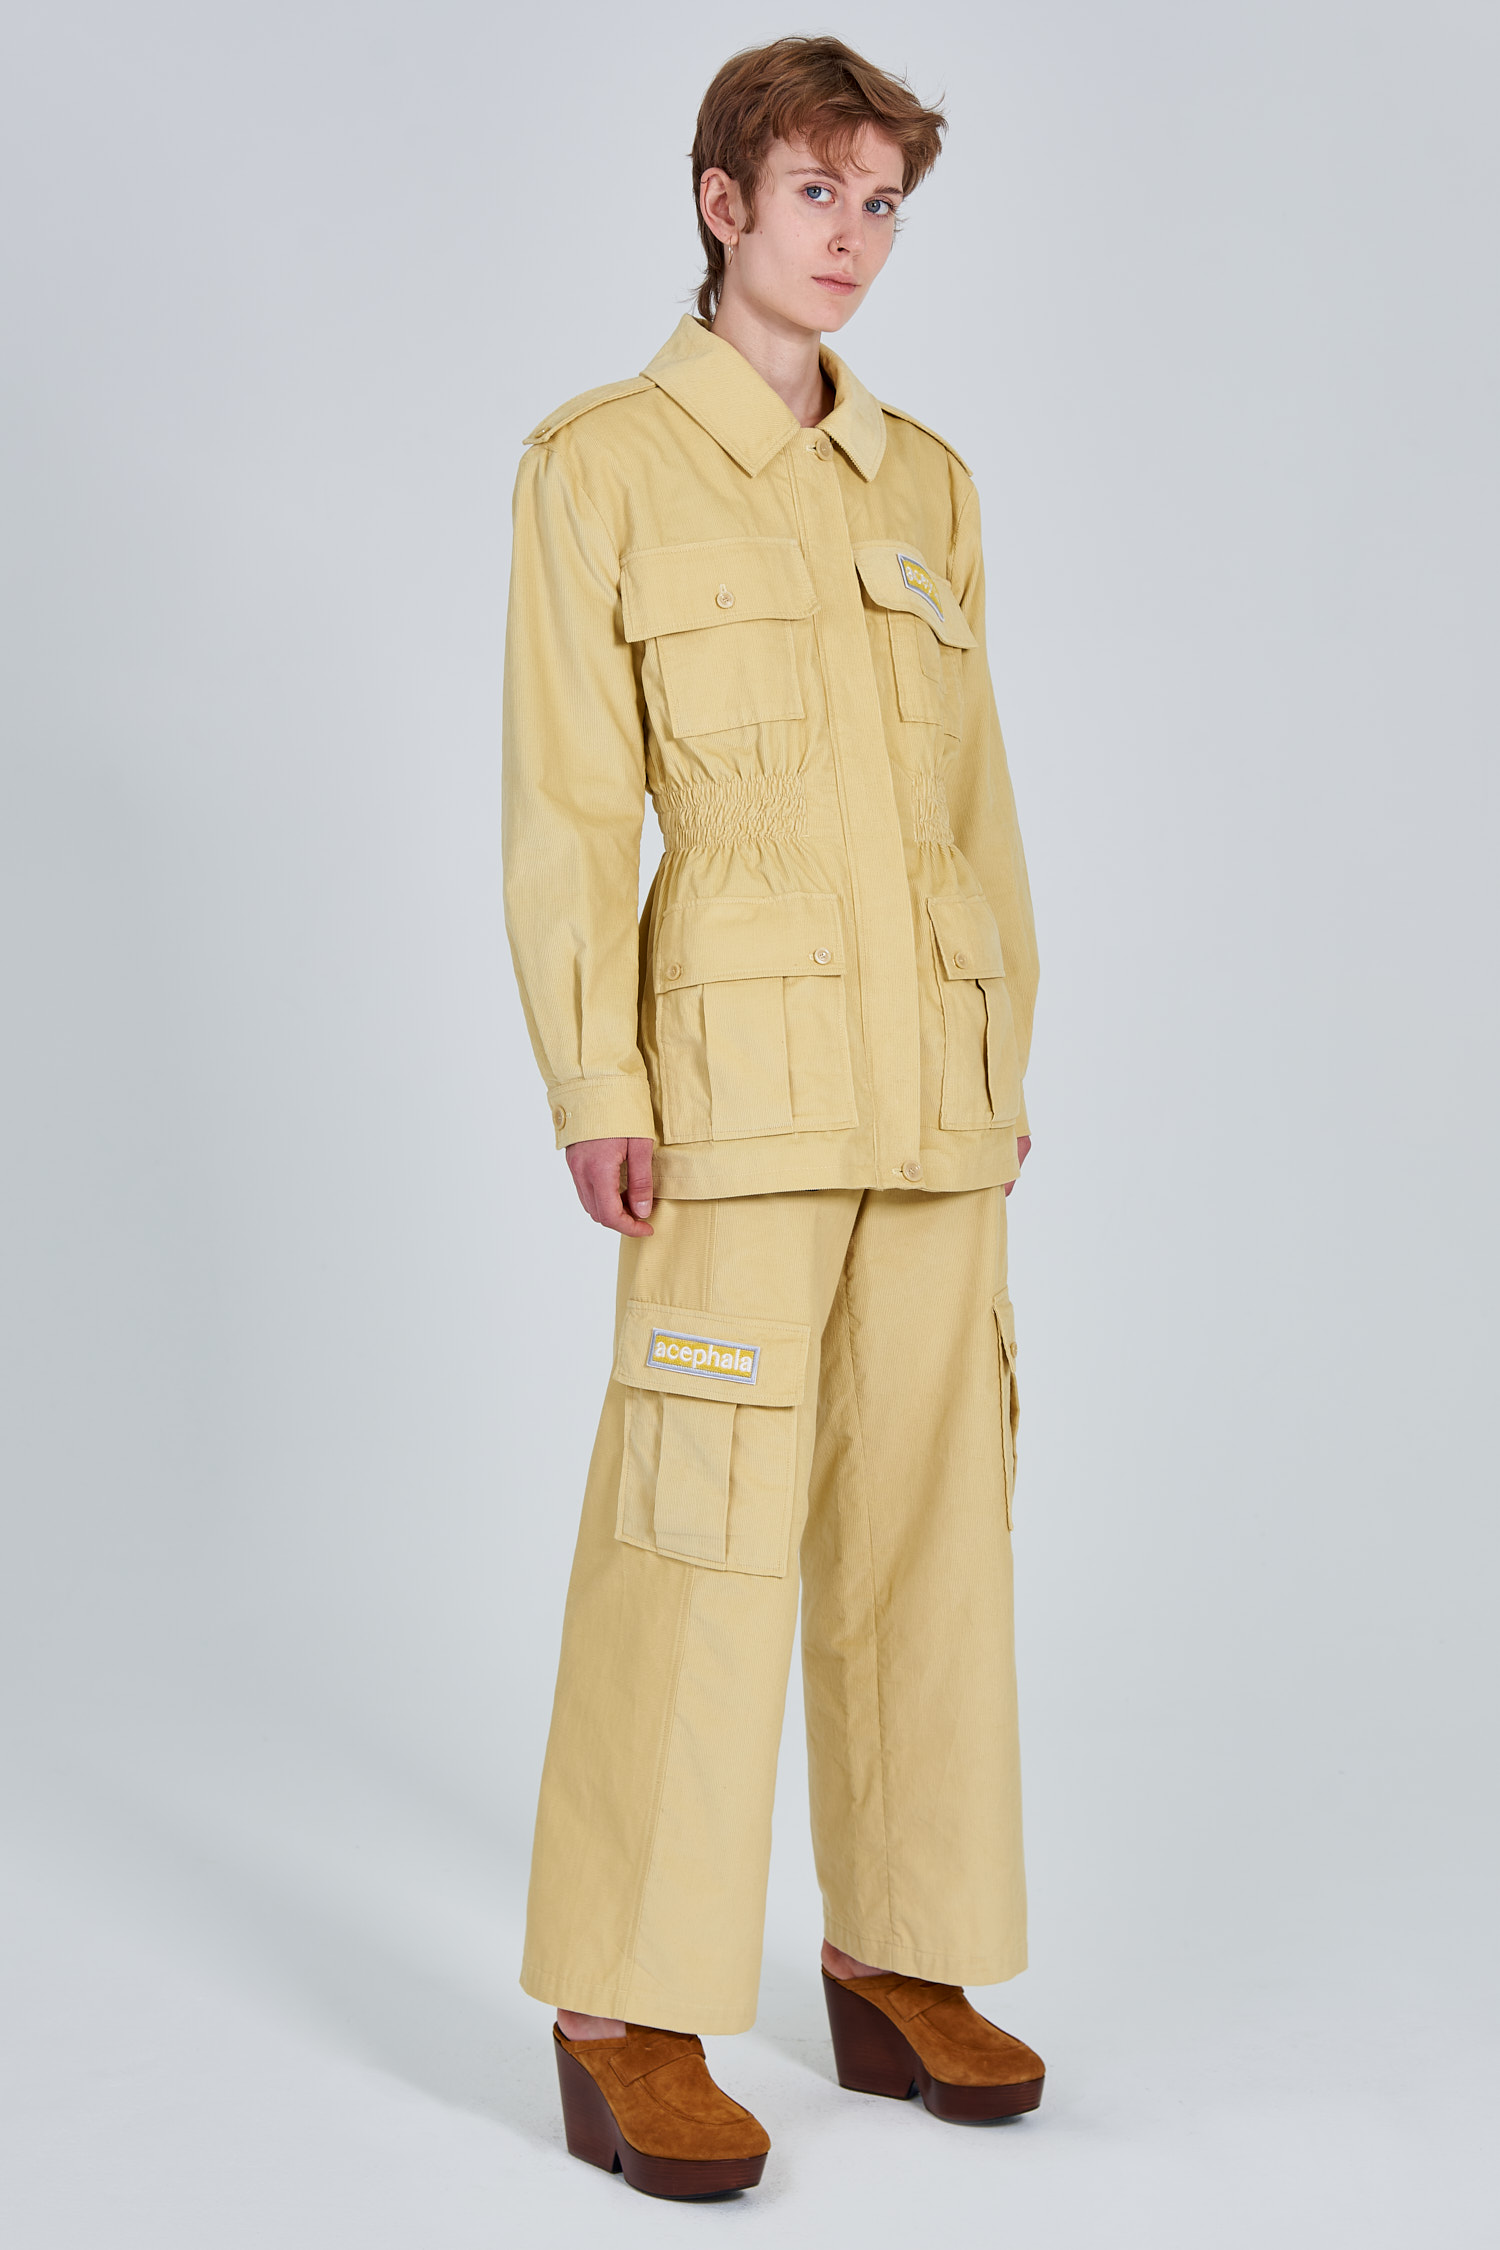 Acephala Fw 2020 21 Yellow Corduroy Trousers Jacket Female Side Left